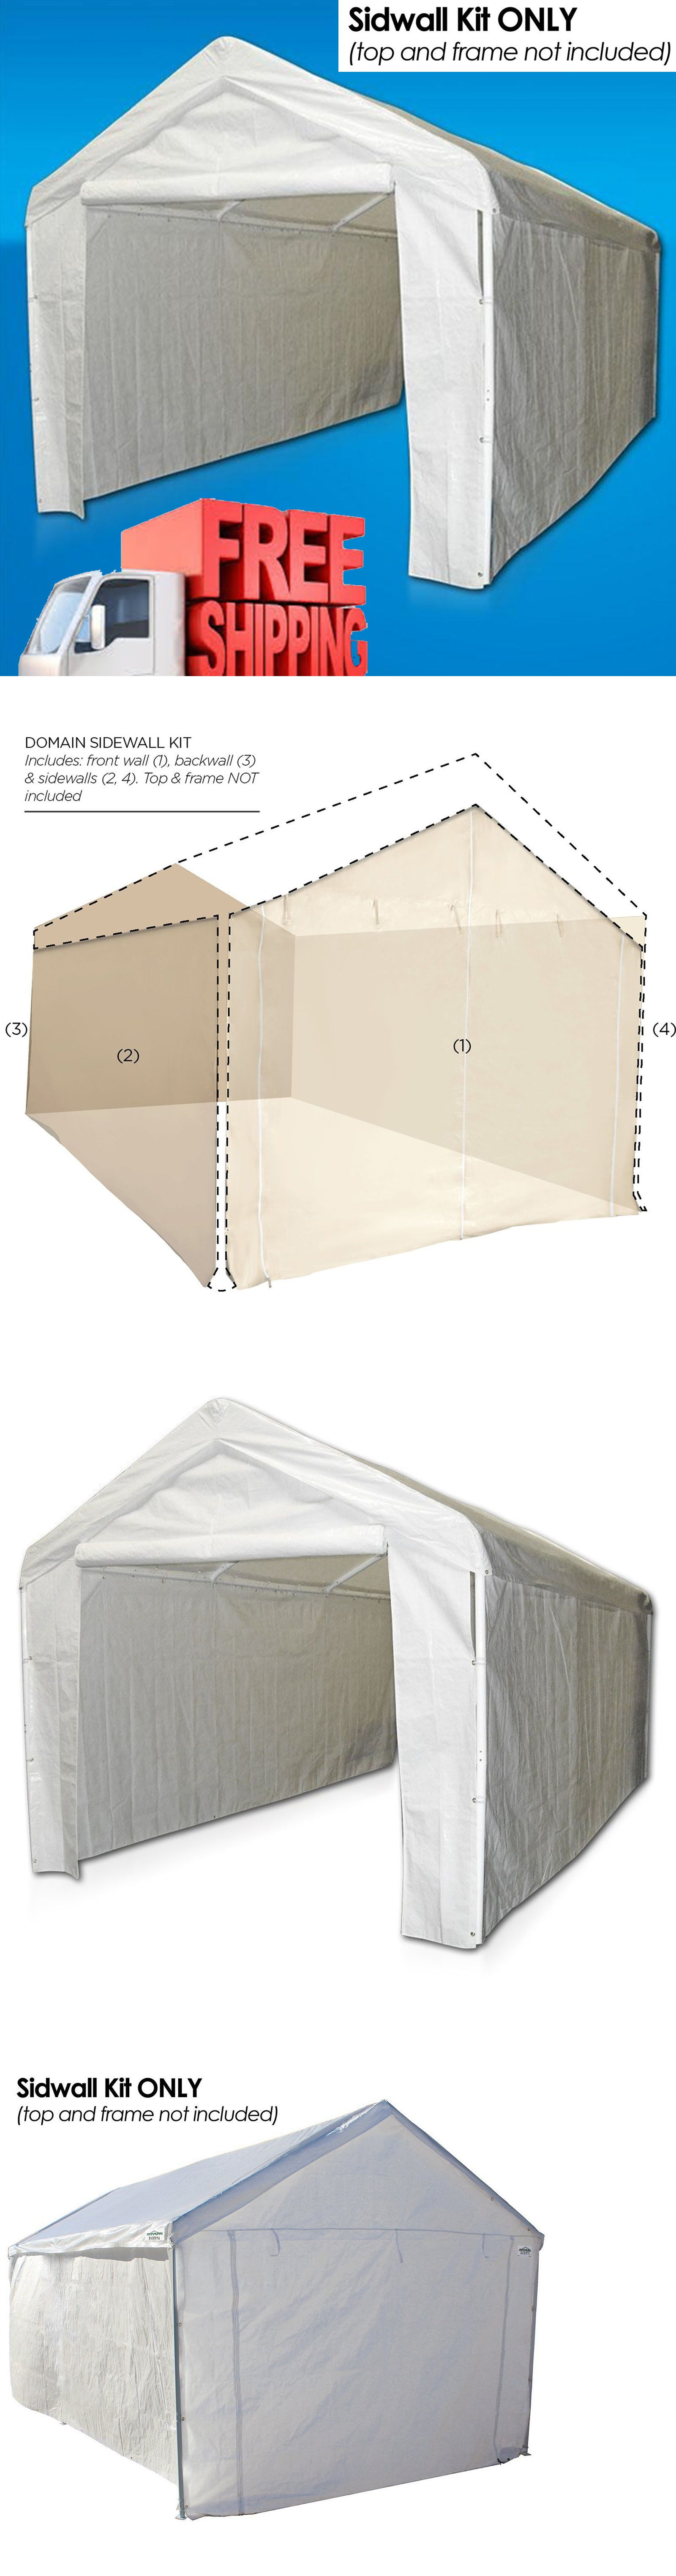 Awnings and Canopies 180992 Canopy Side Wall Kit 10X20